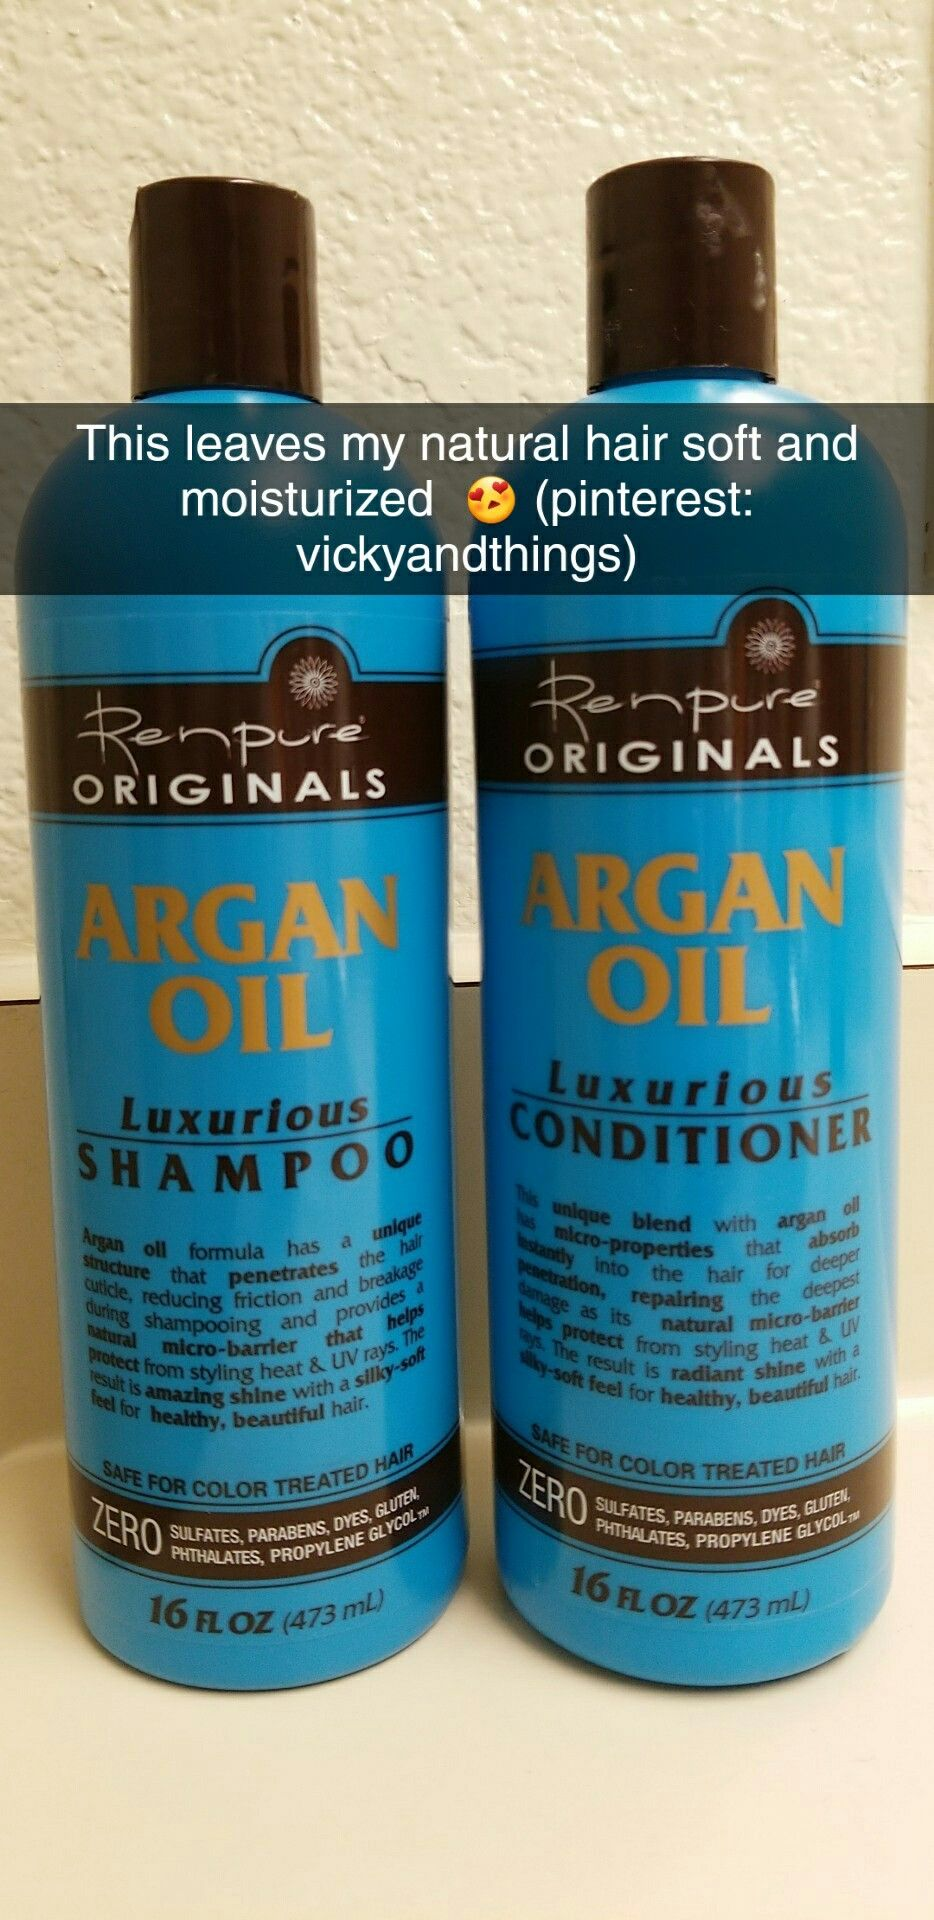 This hair care business has become my favorite to take care of my